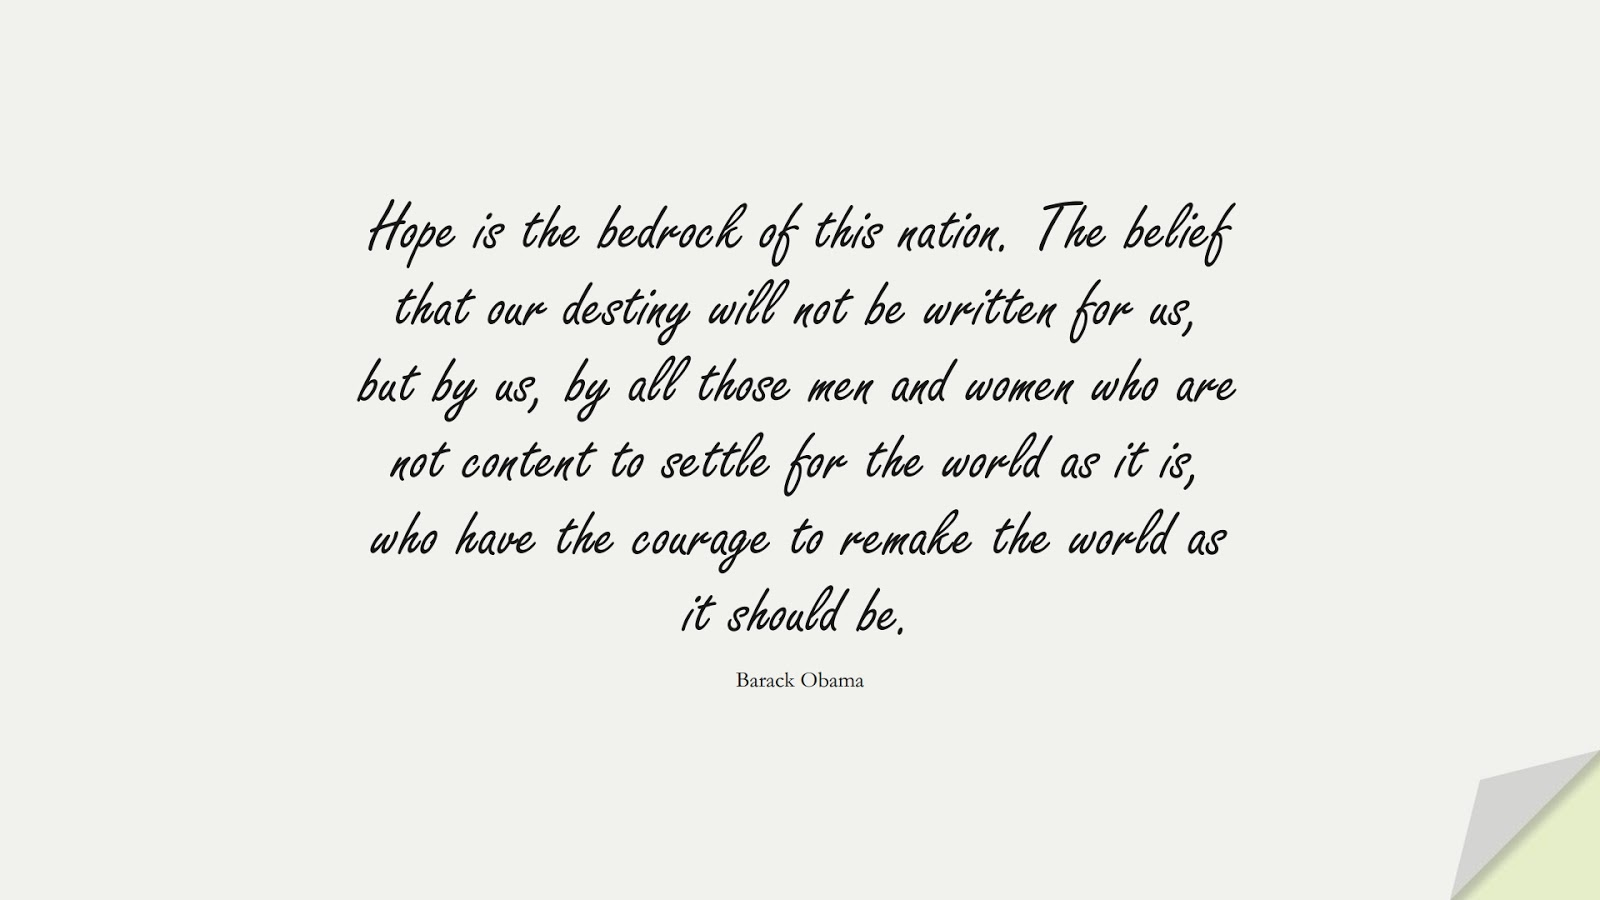 Hope is the bedrock of this nation. The belief that our destiny will not be written for us, but by us, by all those men and women who are not content to settle for the world as it is, who have the courage to remake the world as it should be. (Barack Obama);  #FamousQuotes